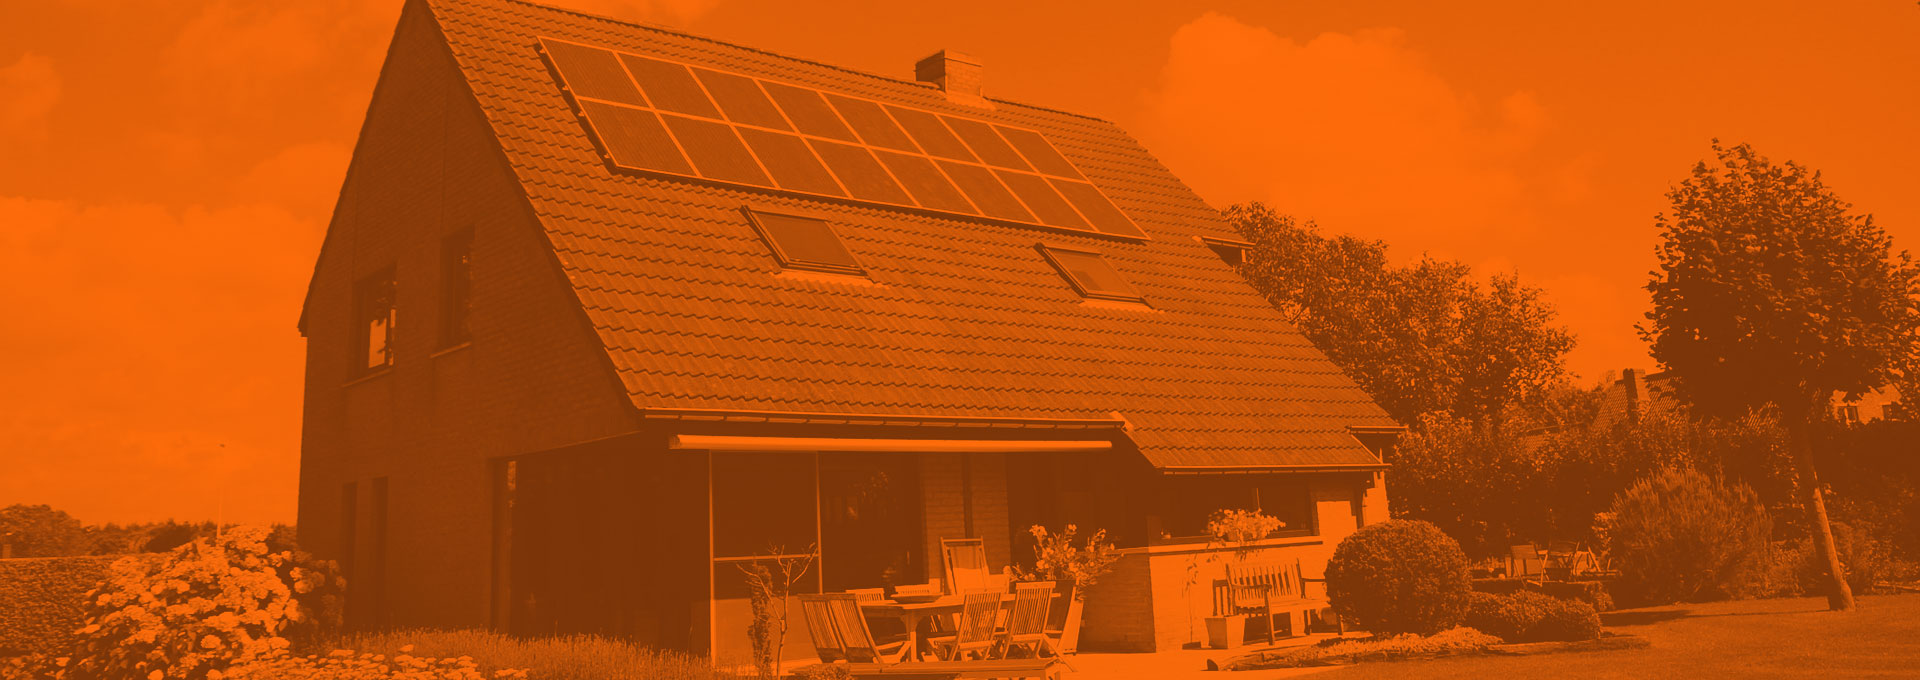 Sustainable Real Estate: How To Sell and Market Eco-Friendly Homes